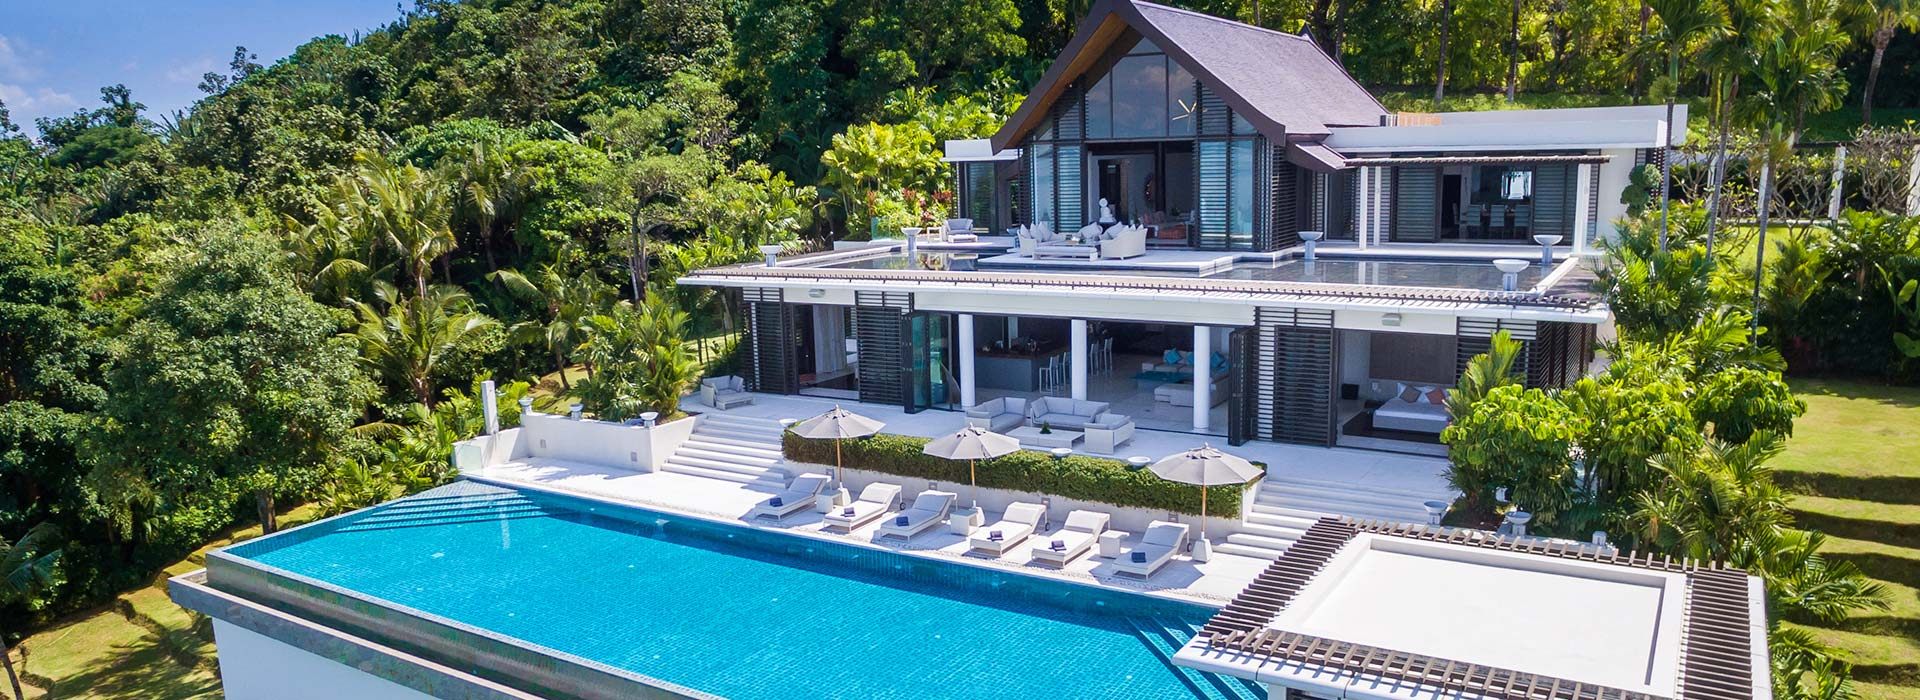 Villa Oceans 11<br>with private pool